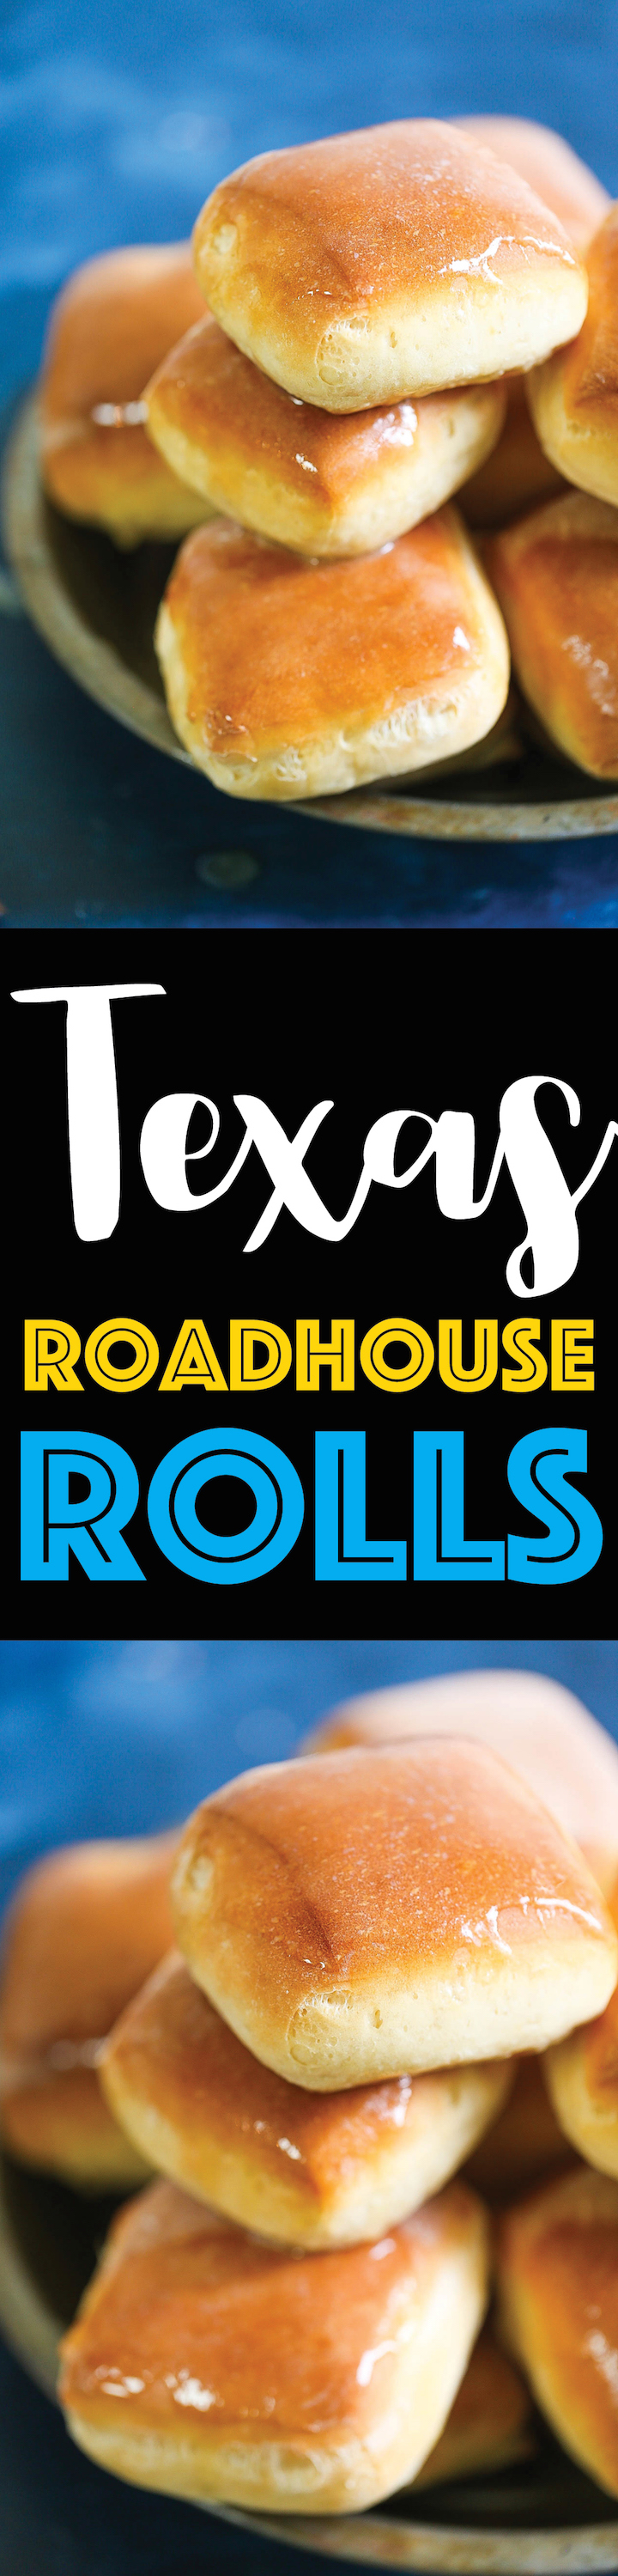 Texas Roadhouse Rolls - Everyone's FAVORITE copycat Texas roadhouse rolls! Yes, you can make them right at home completely from scratch and it is SO MUCH BETTER! It's so amazingly buttery and fluffy! You will only want the homemade version after this!